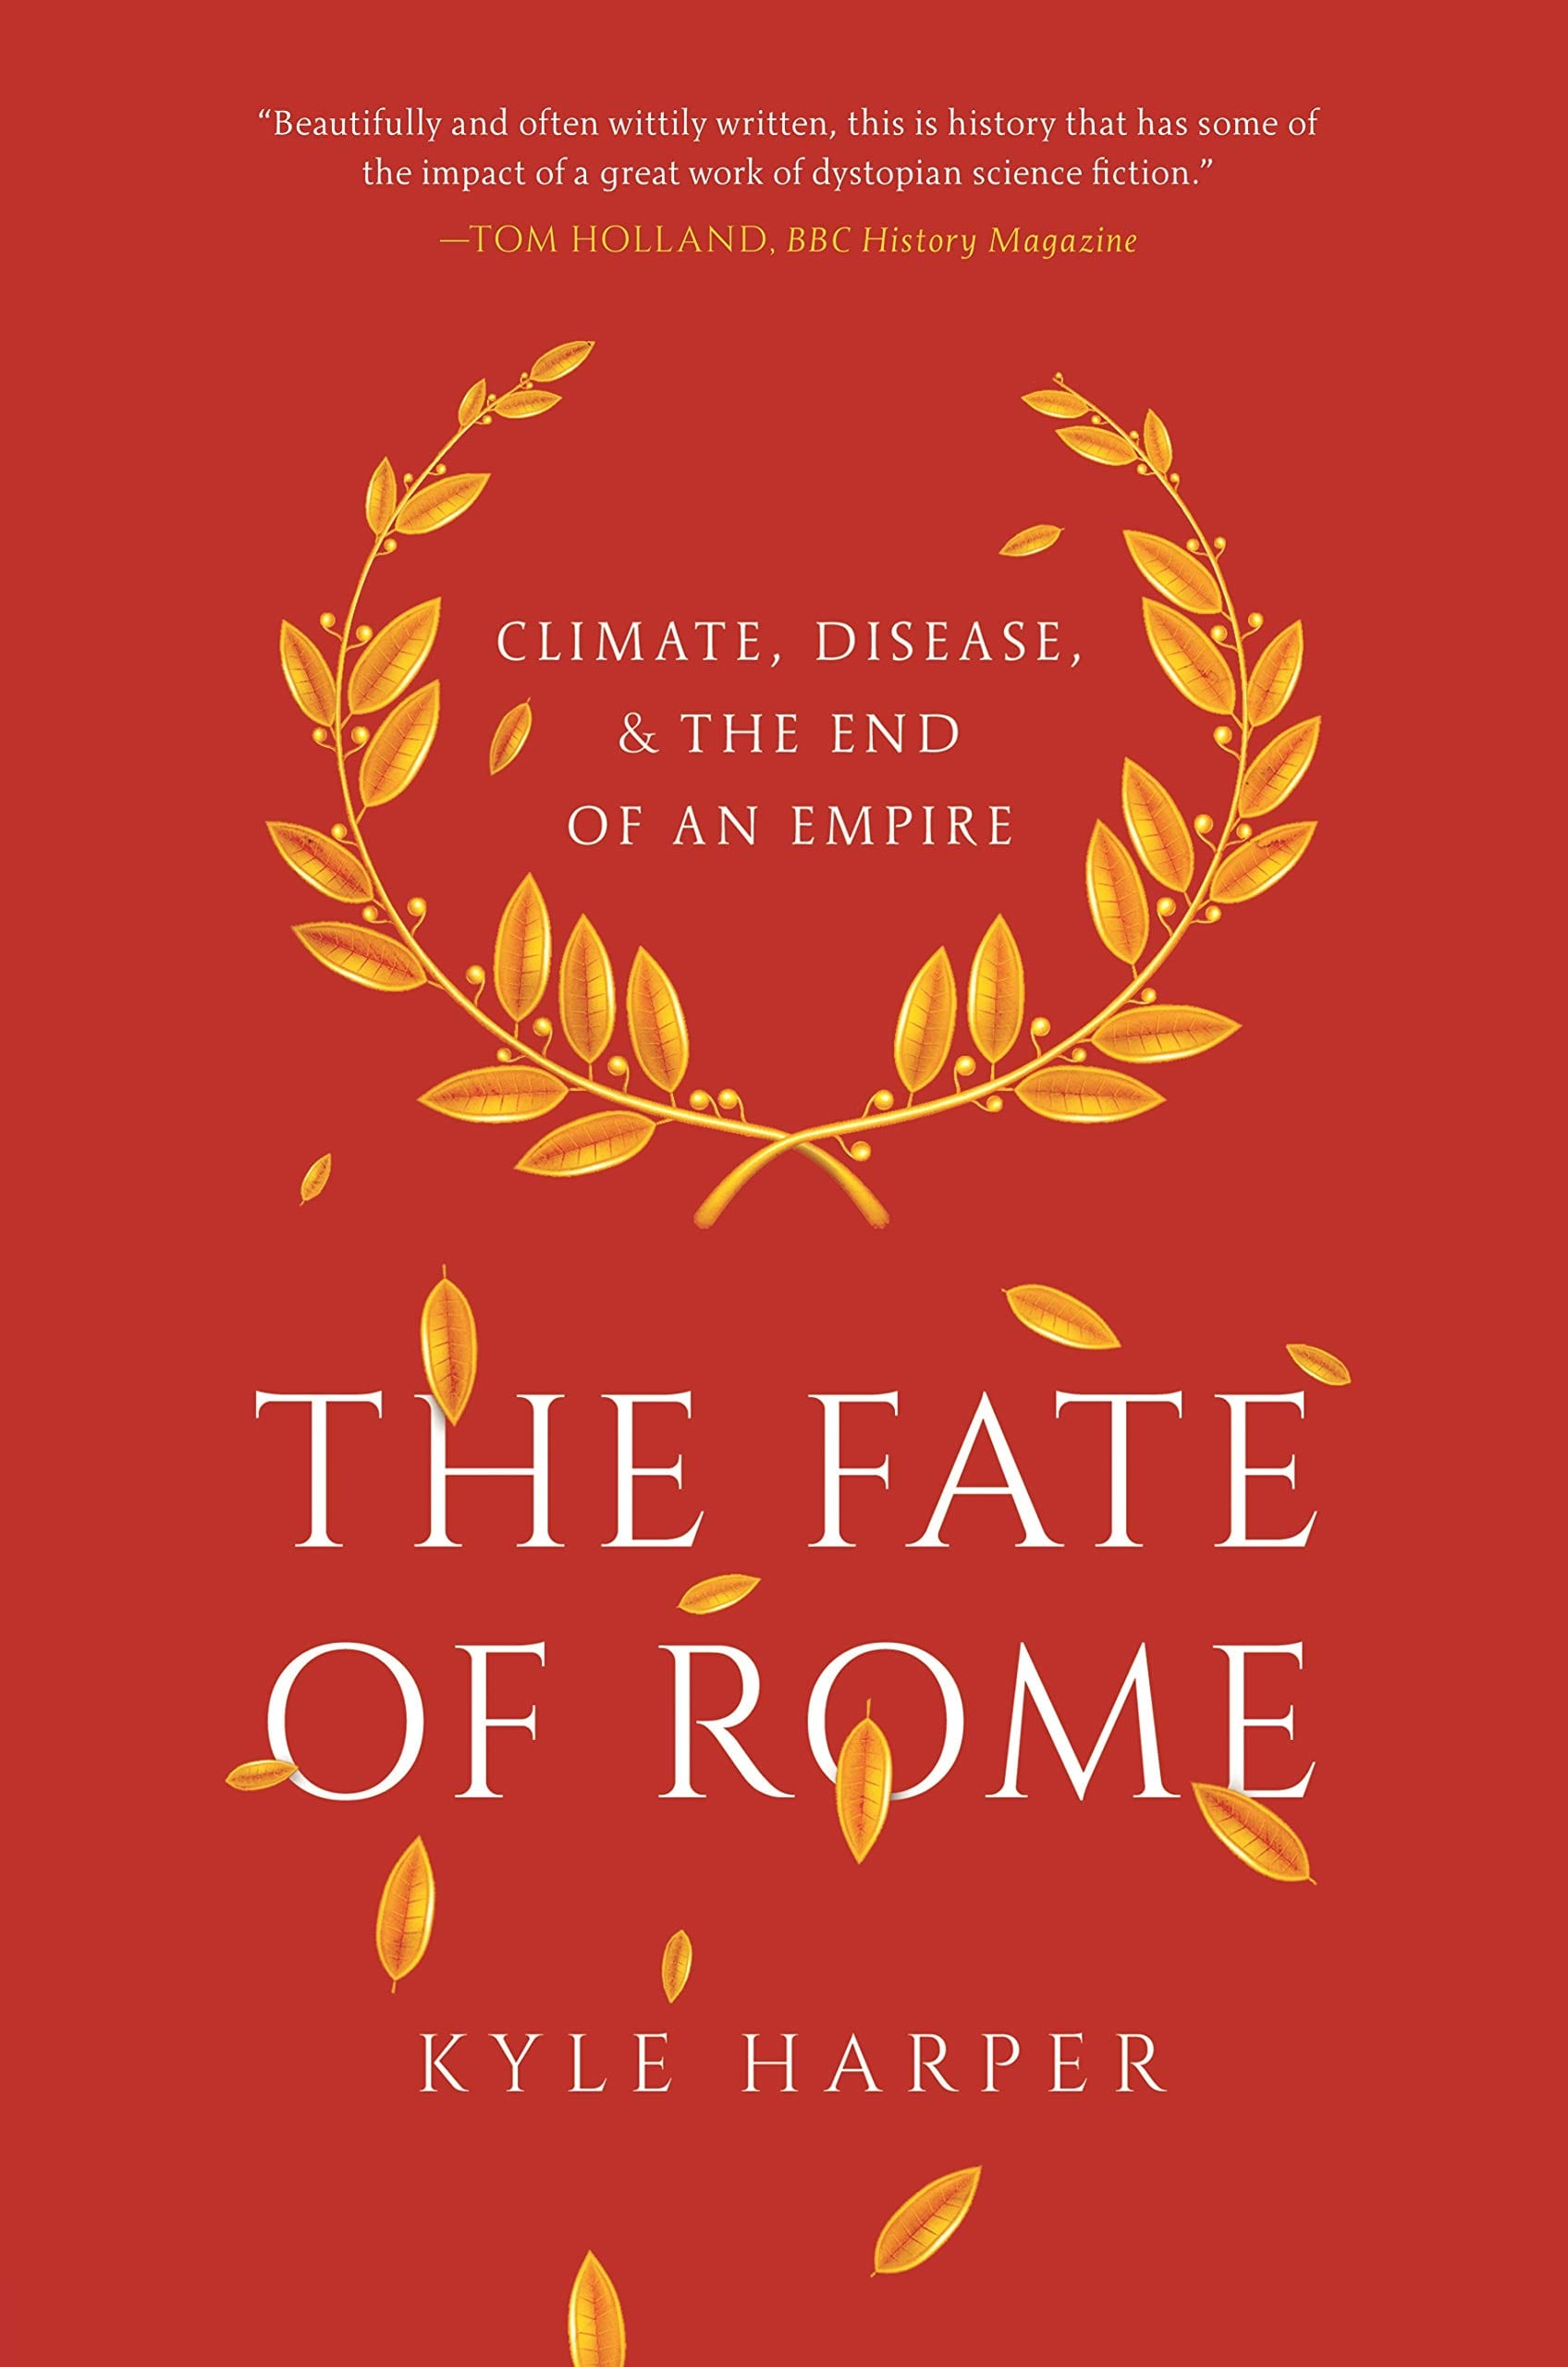 gustobeats book club for rome and italy the fate of rome